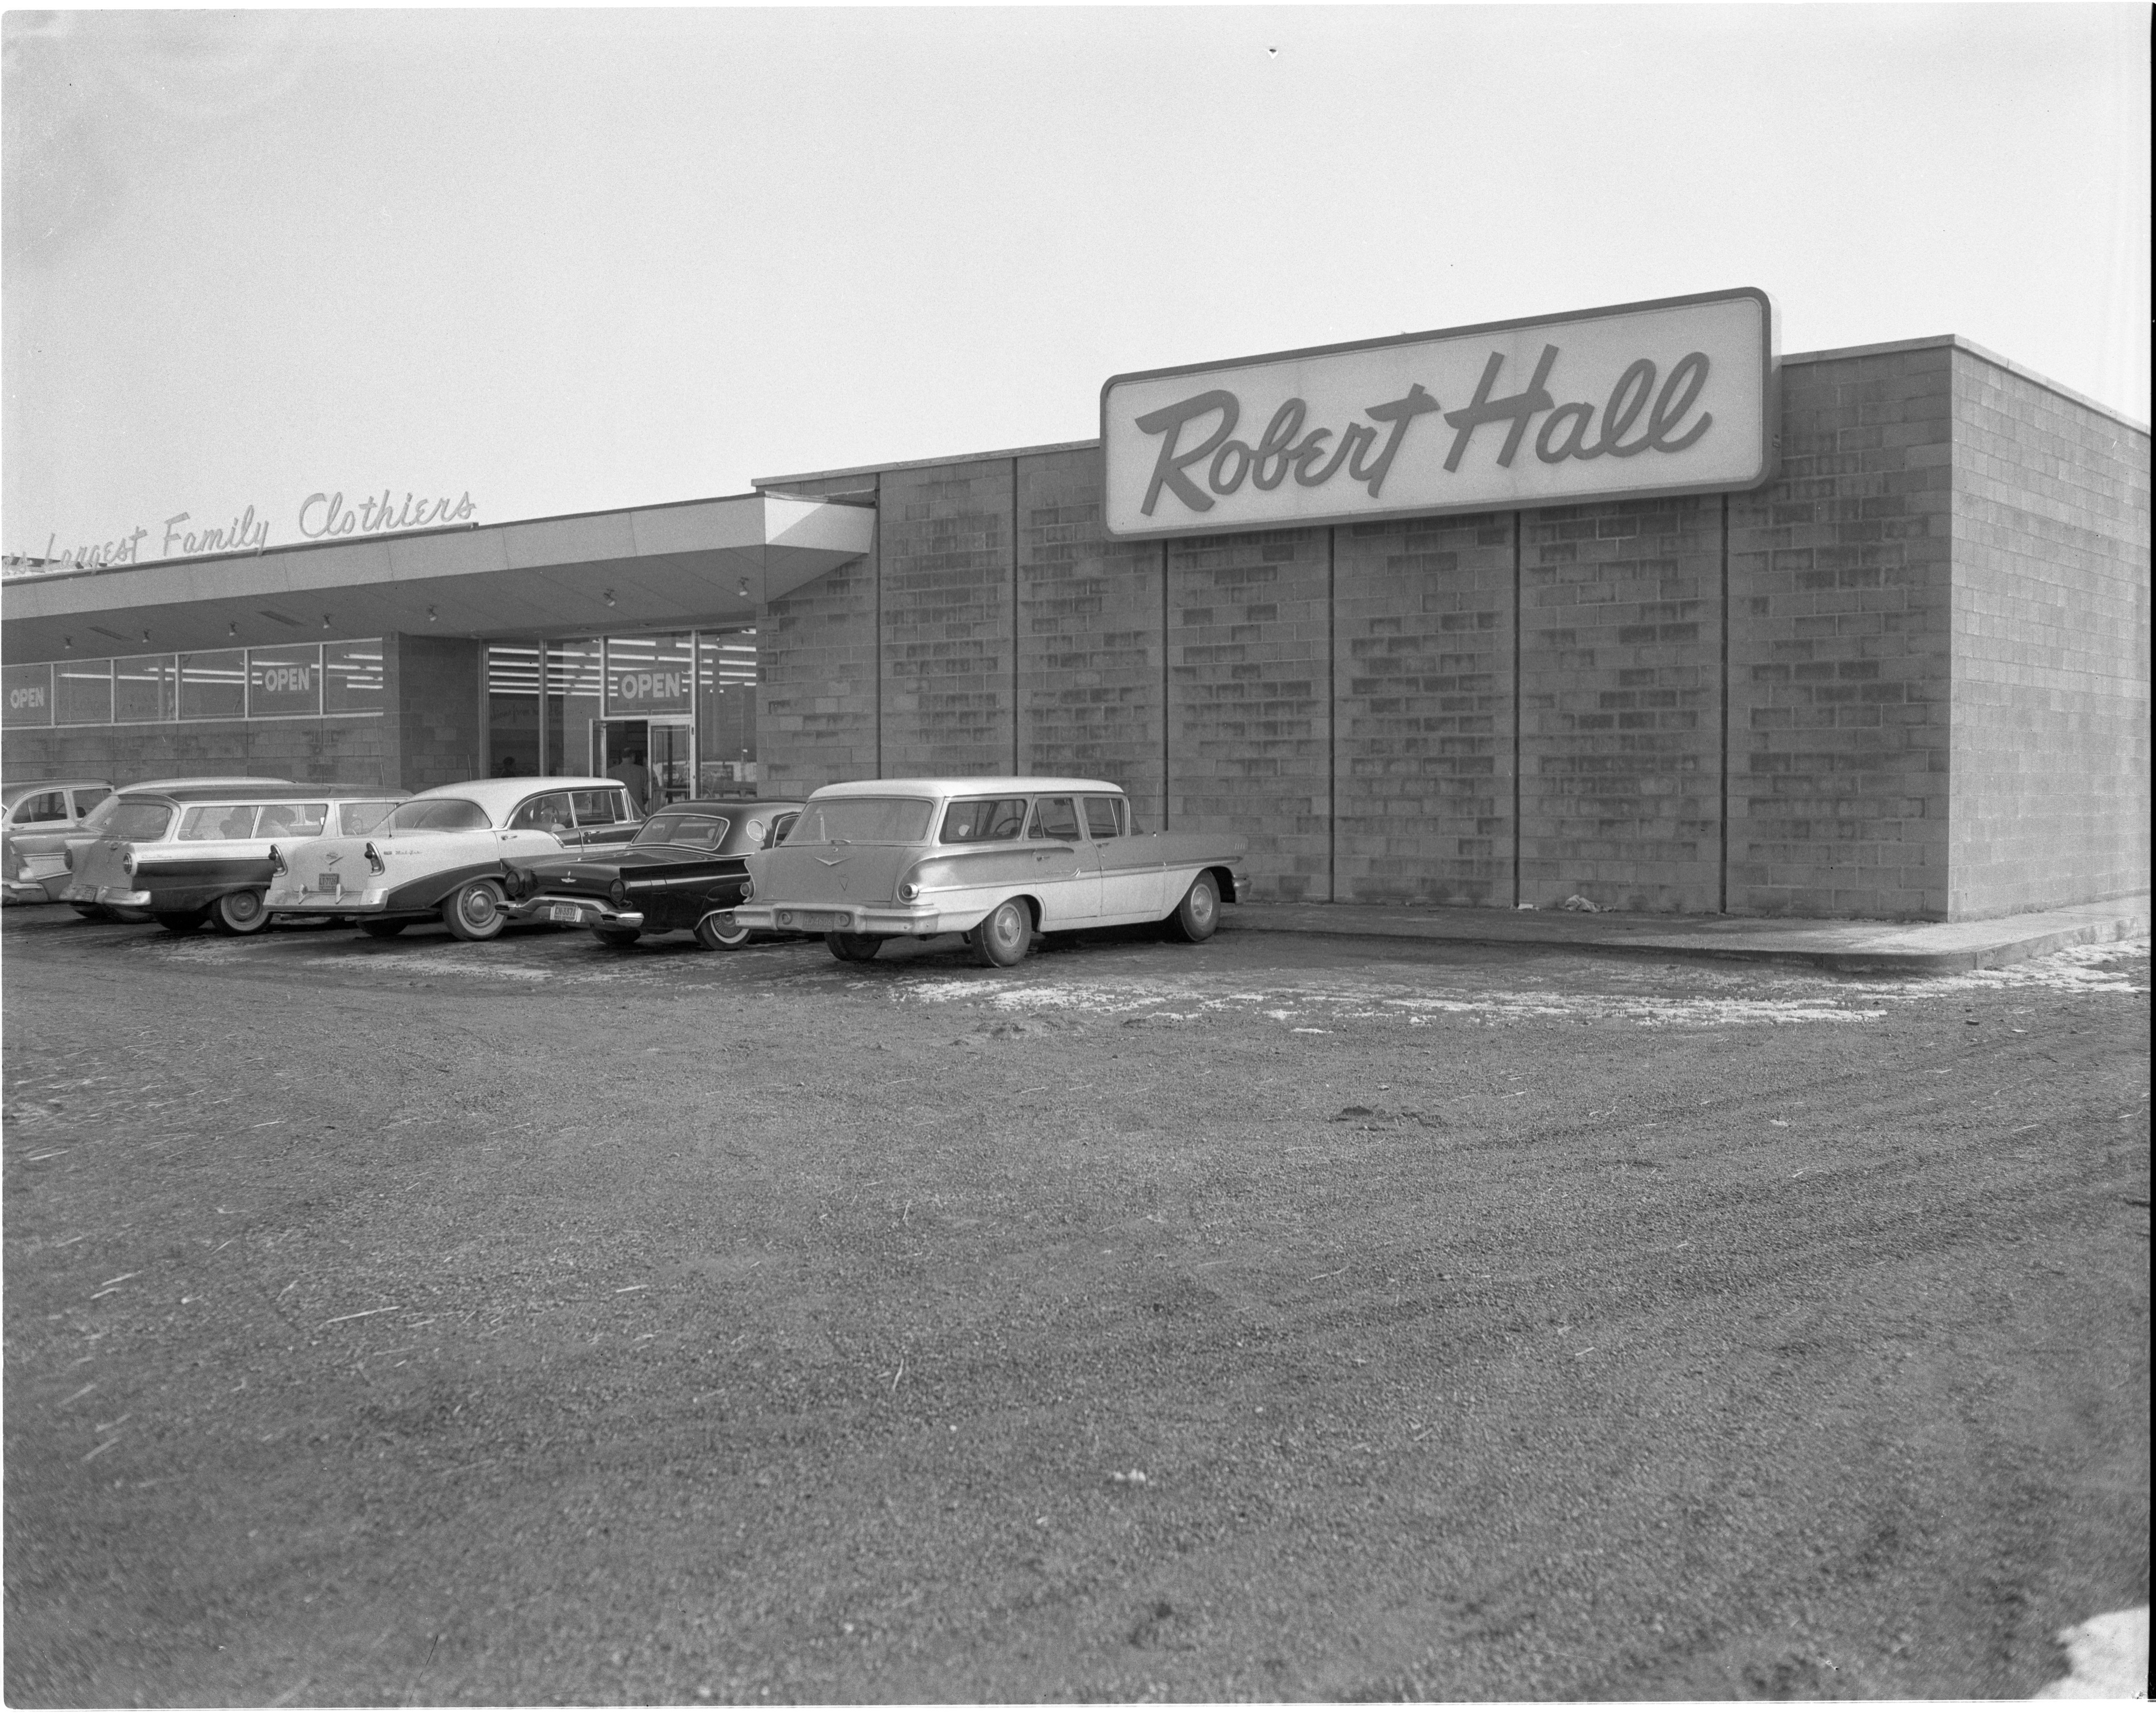 Exterior Of Newly Opened Robert Hall Clothes Store, February 1959 image